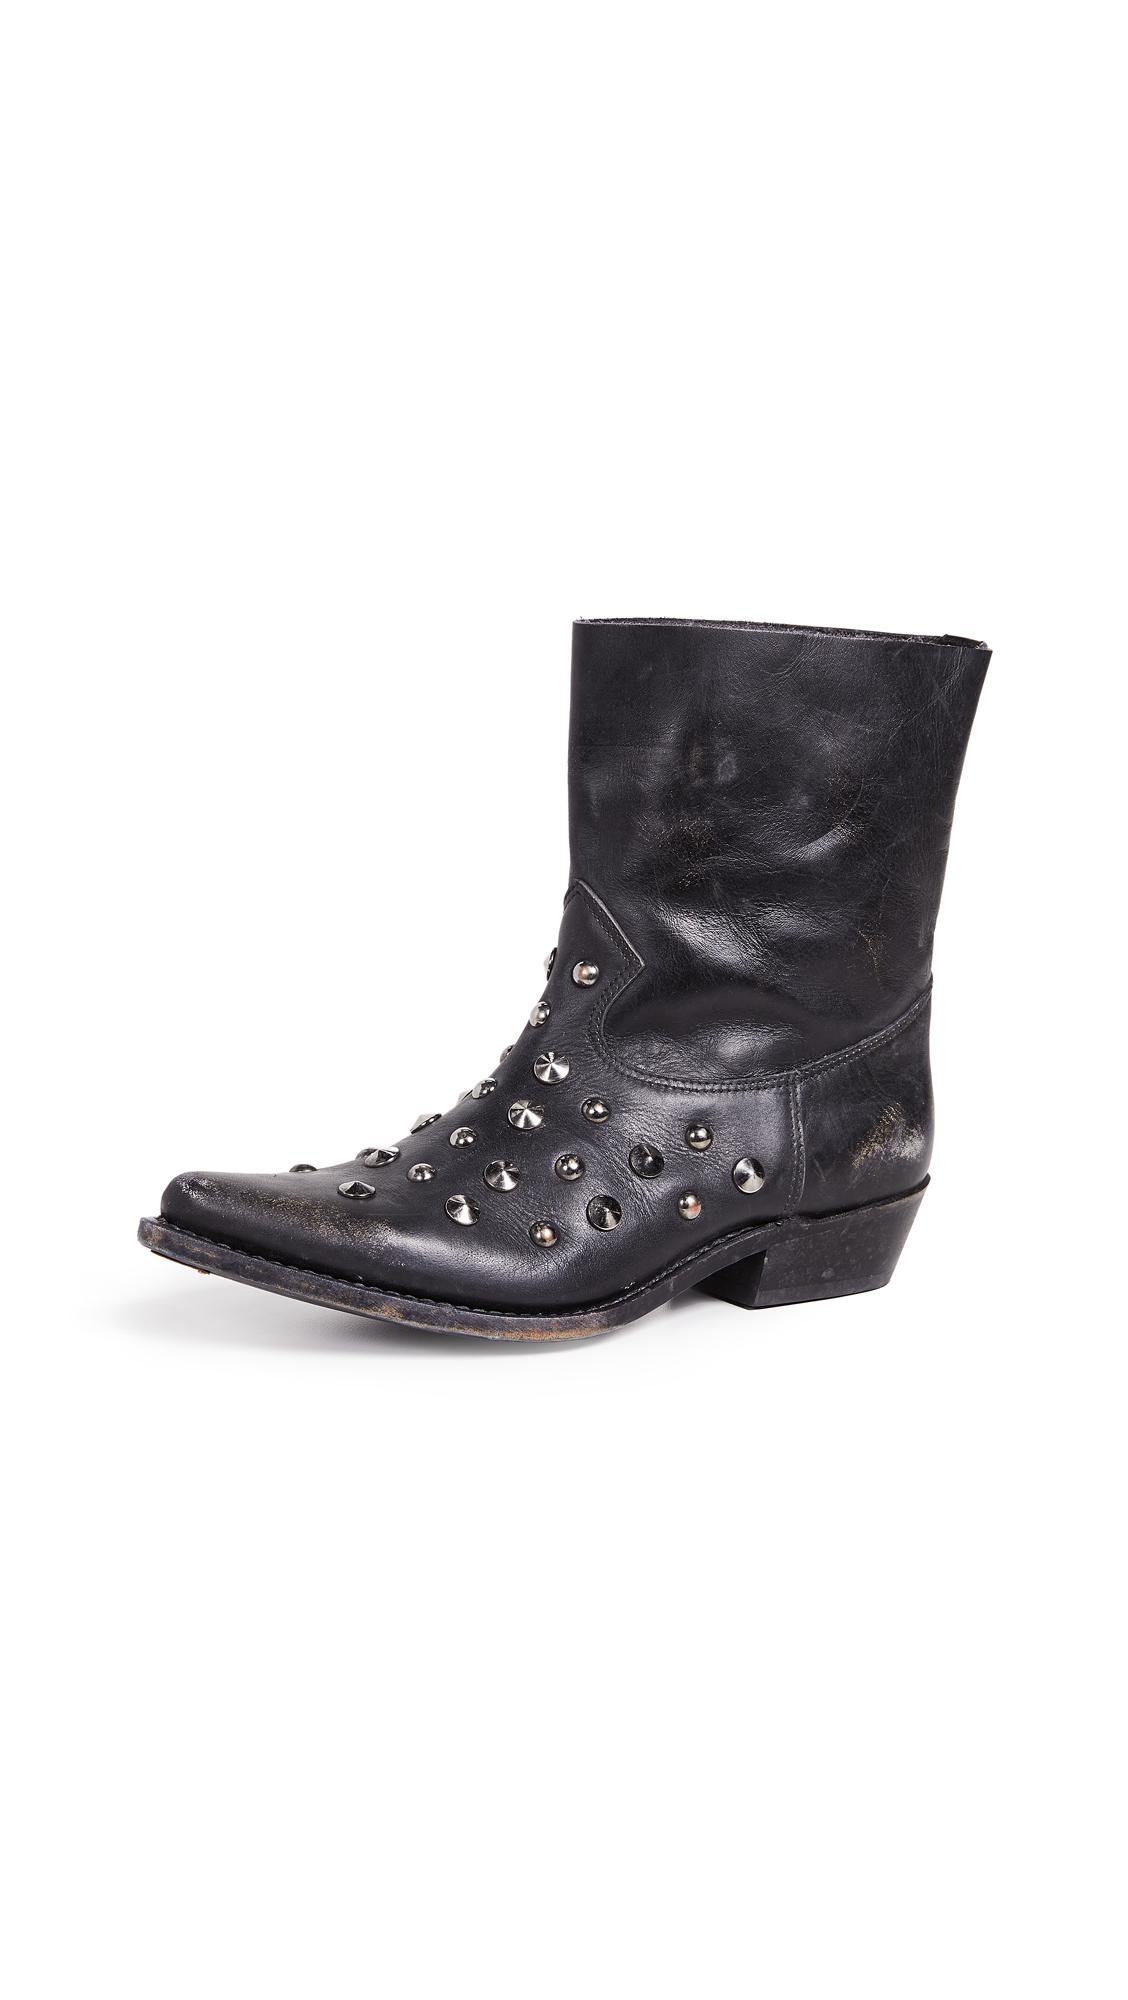 Golden Goose Tribute Boots In Black